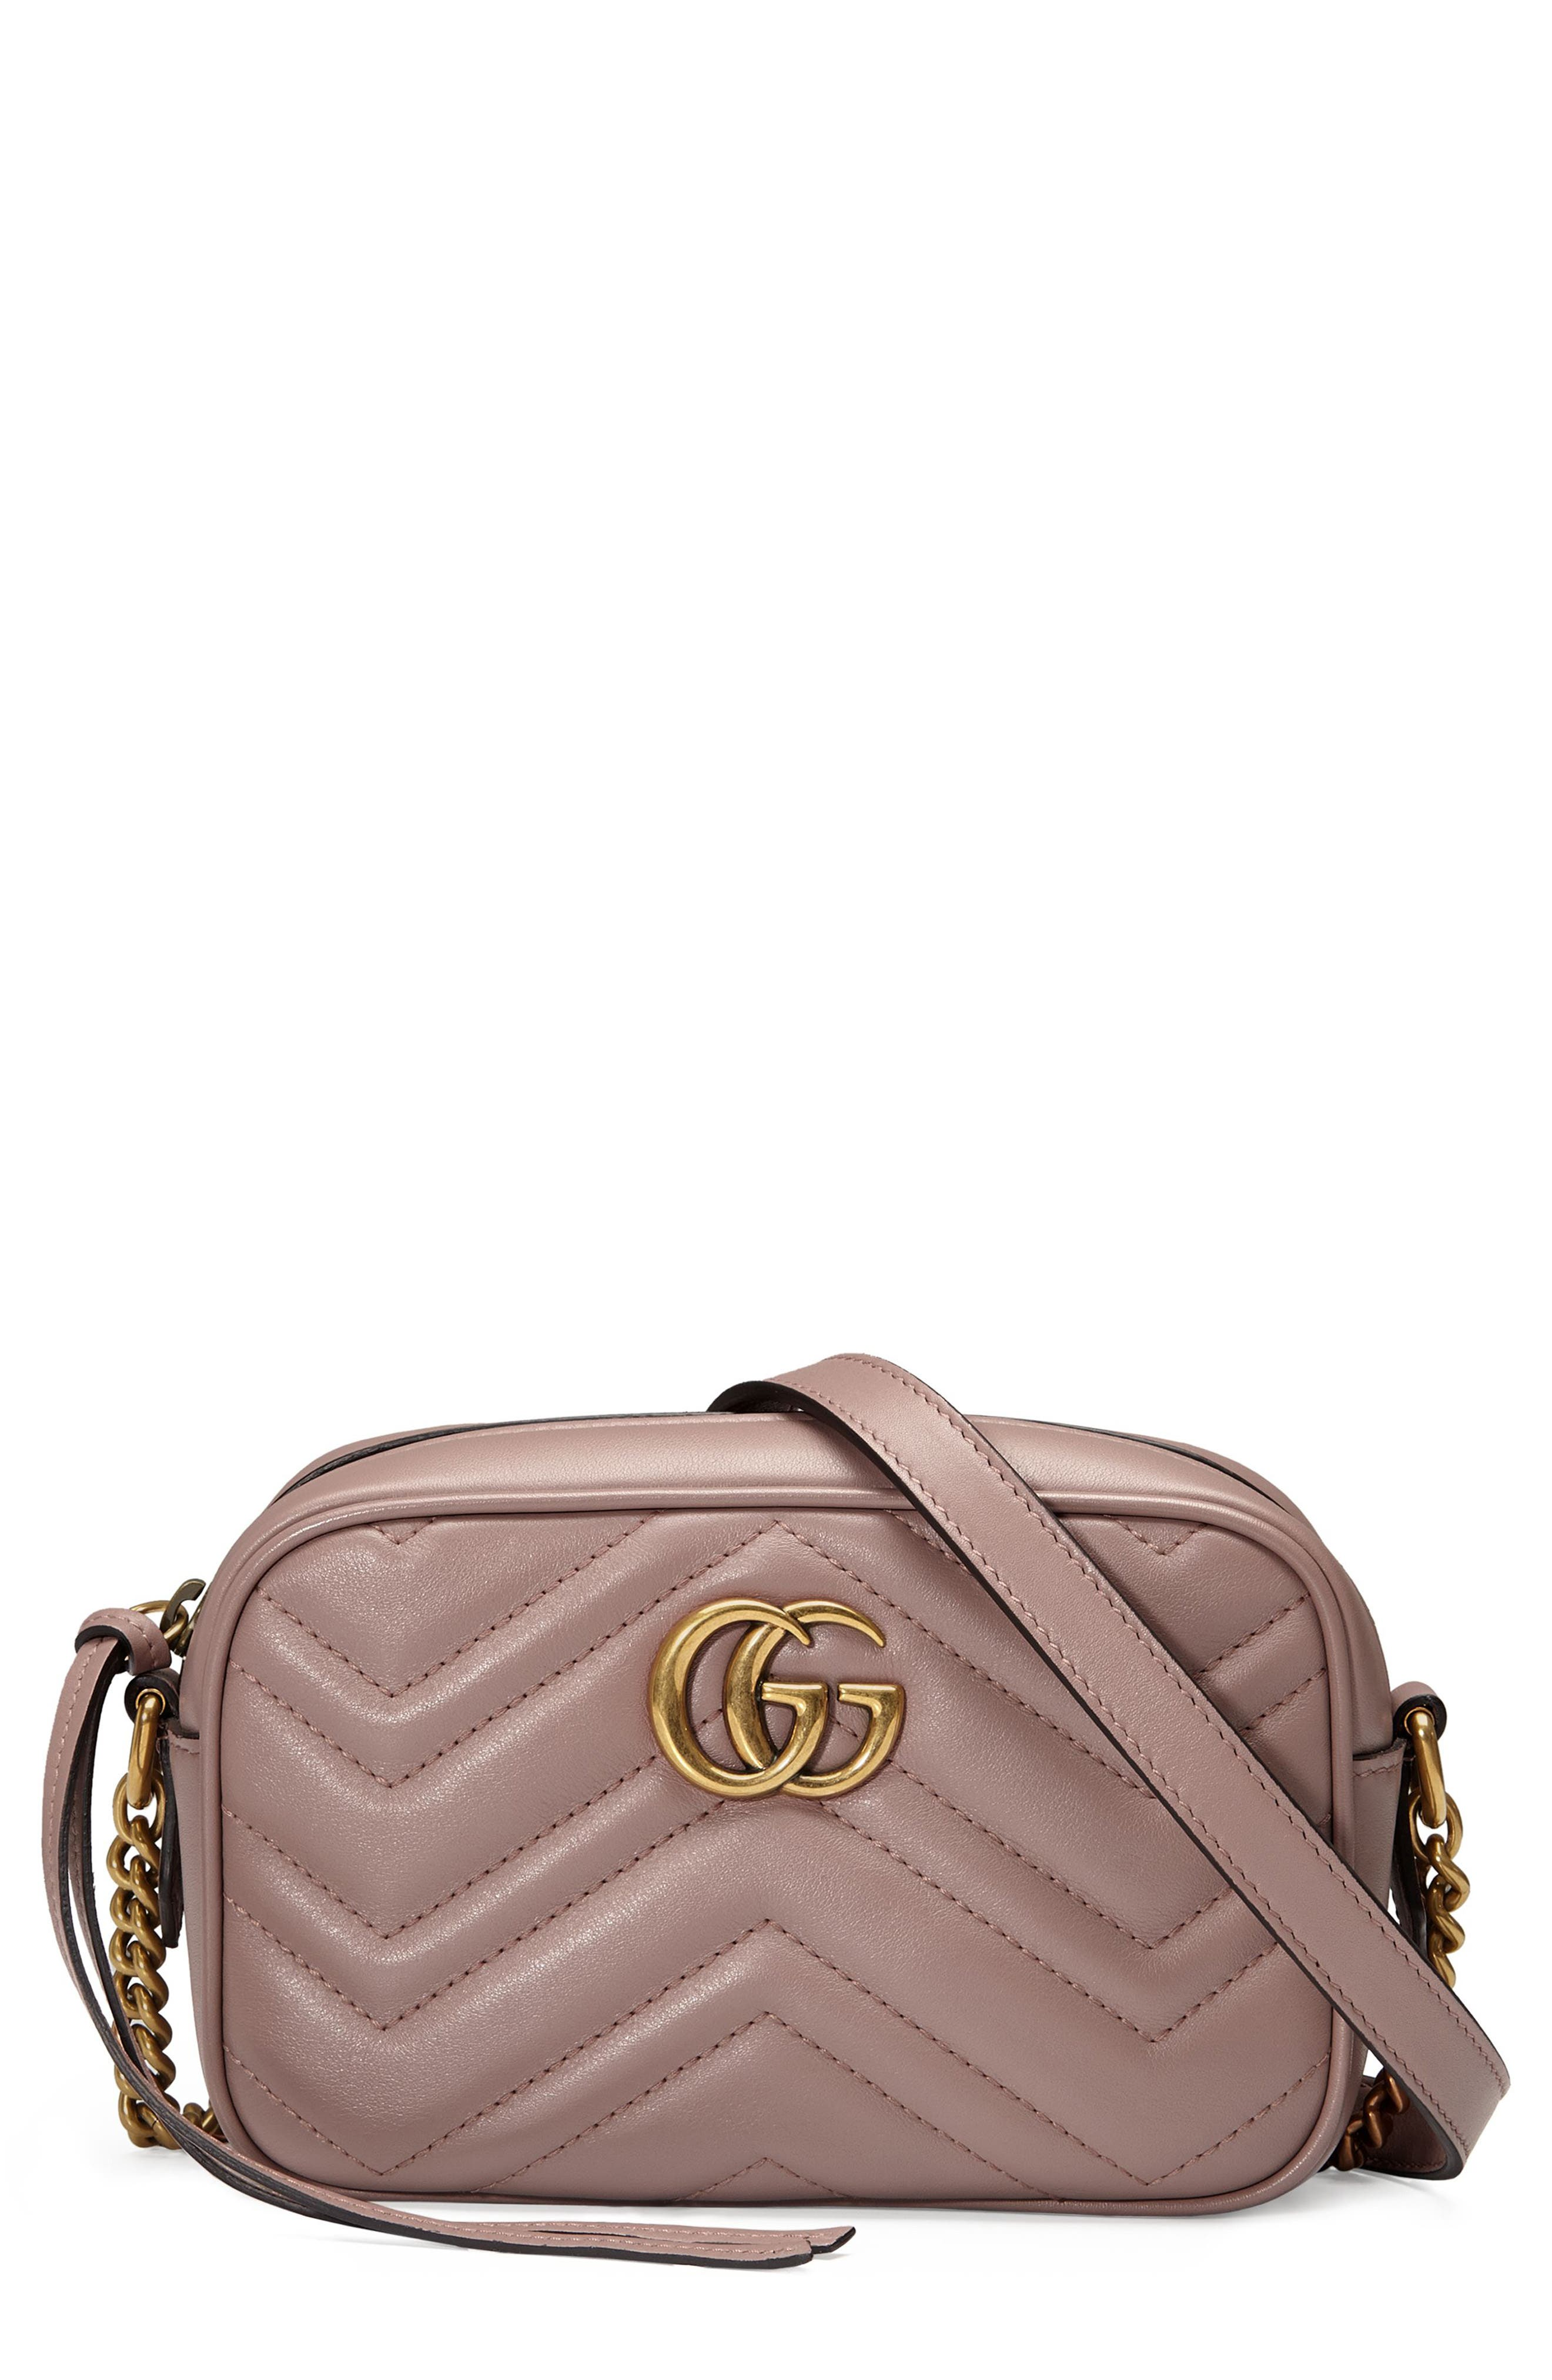 Main Image - Gucci GG Marmont 2.0 Matelassé Leather Shoulder Bag